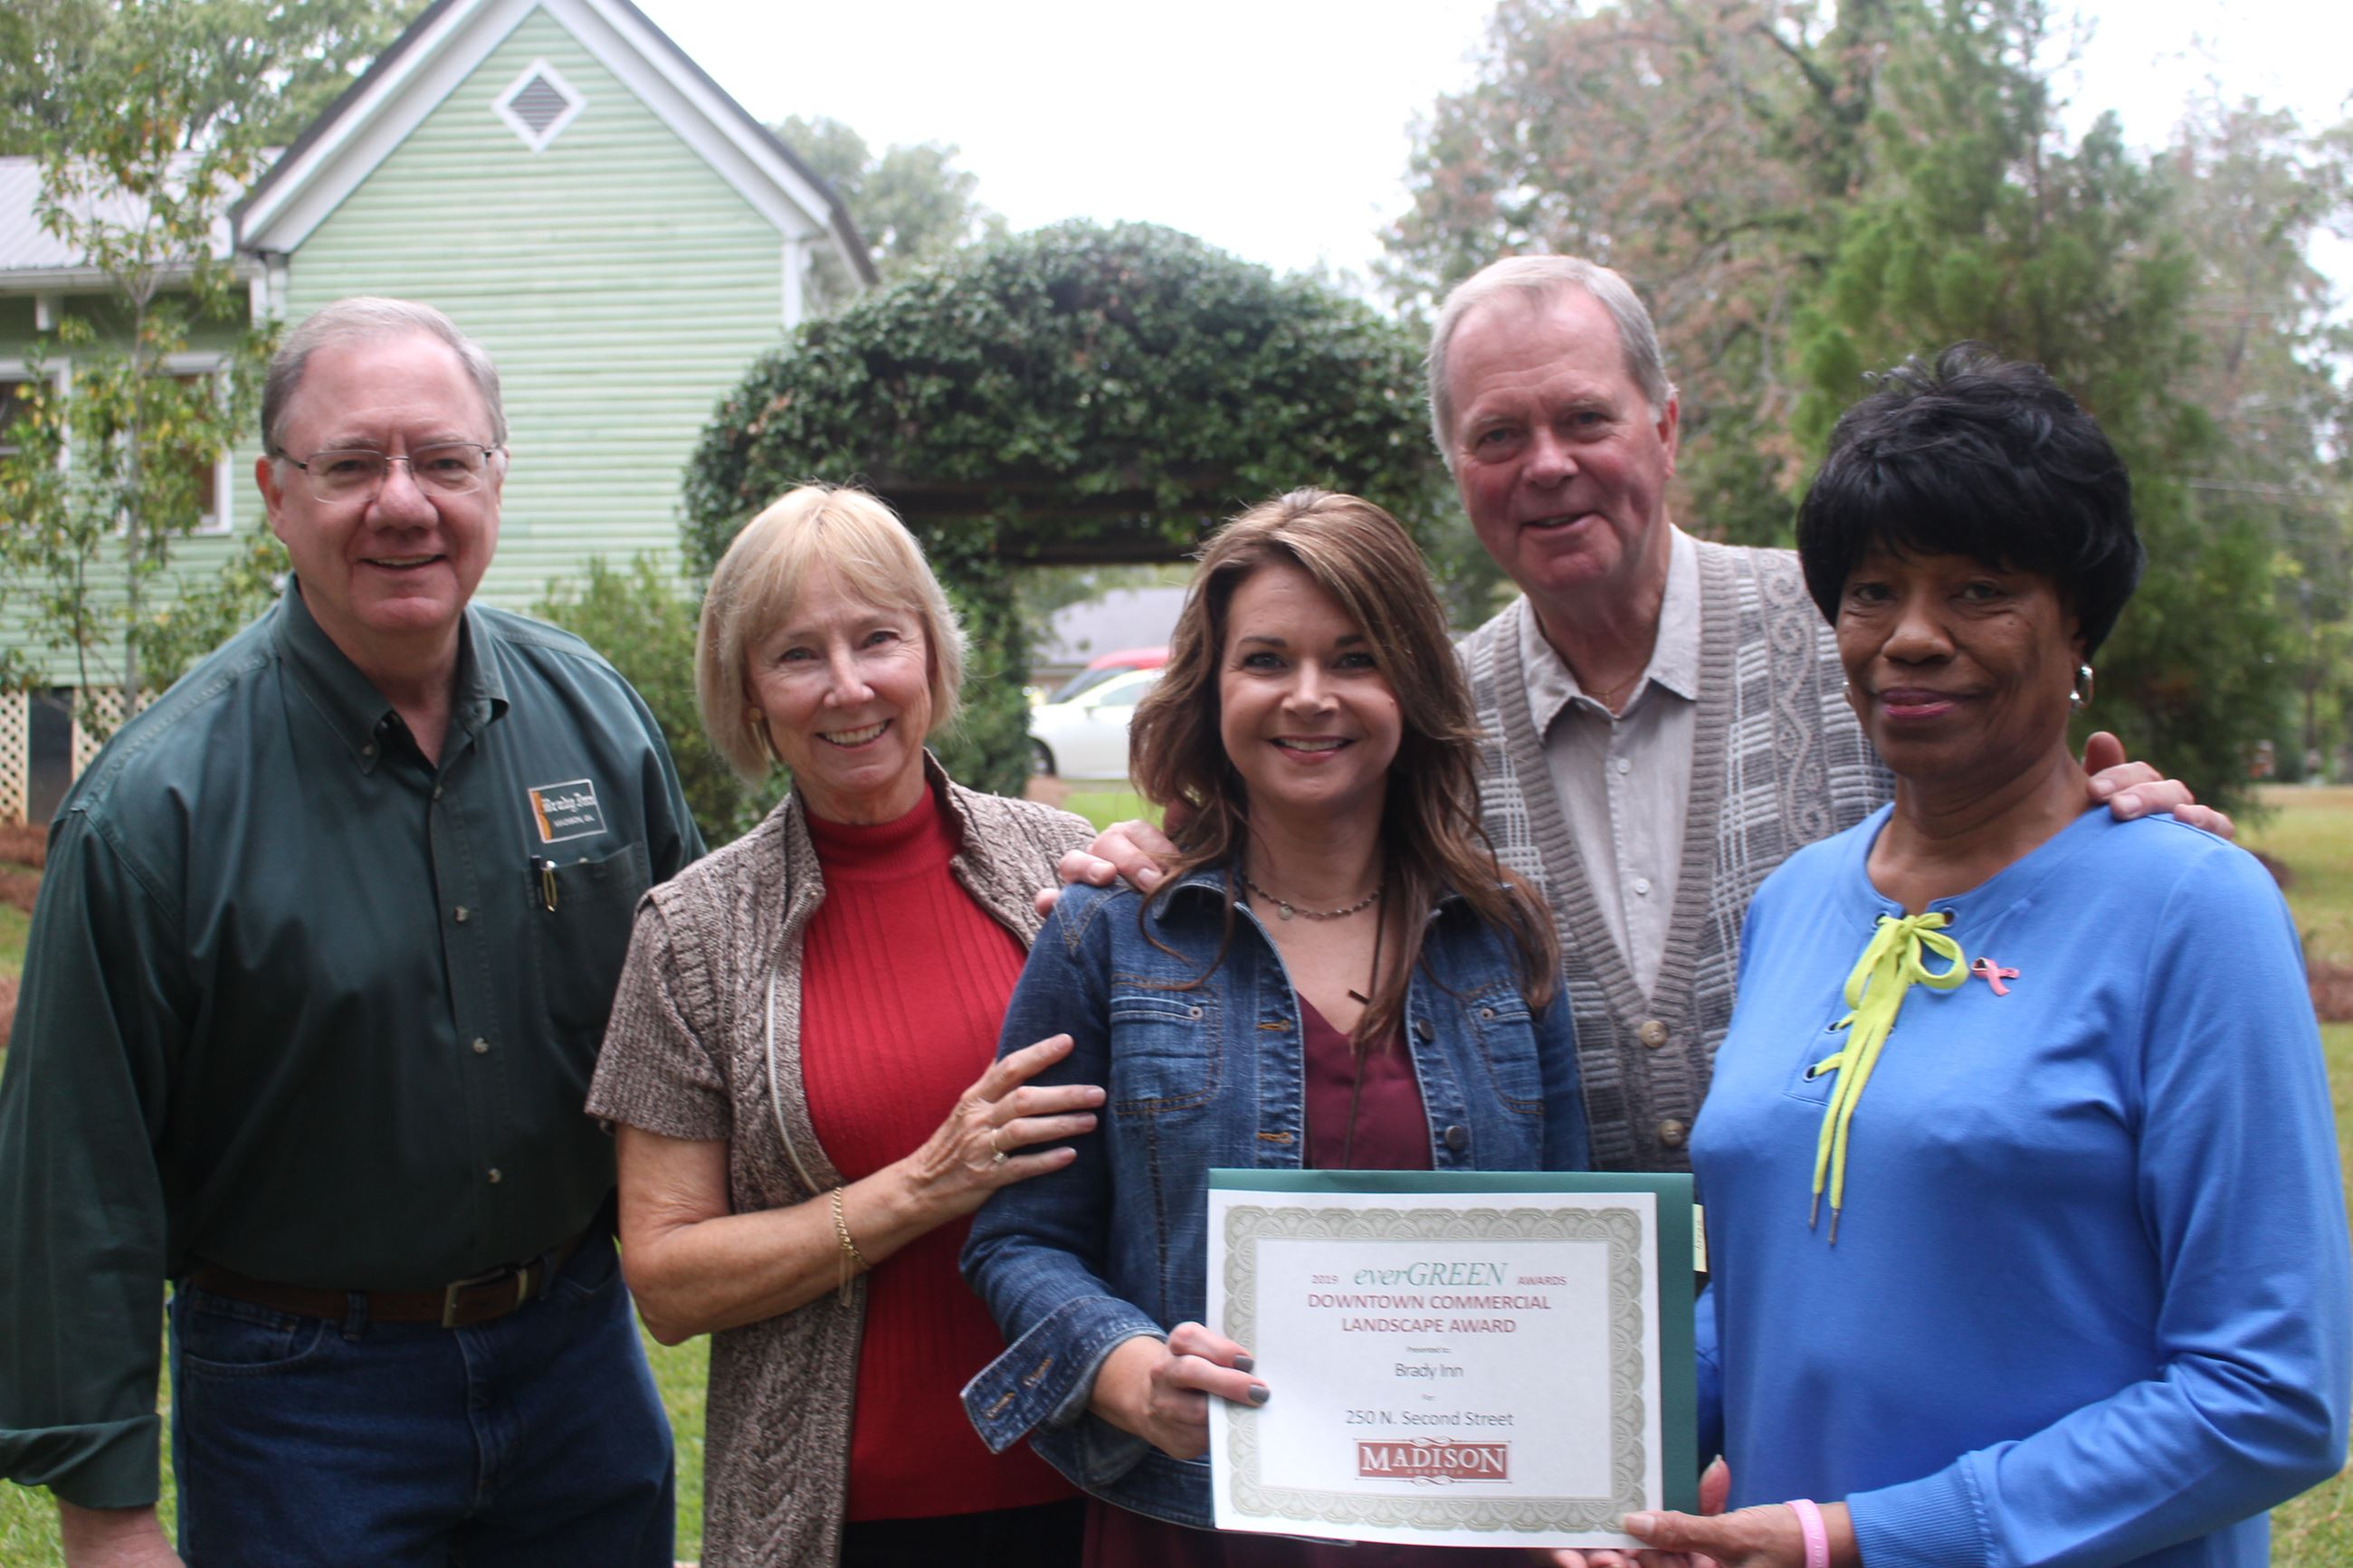 Brady Inn crew with Downtown Commercial  Landscape Award